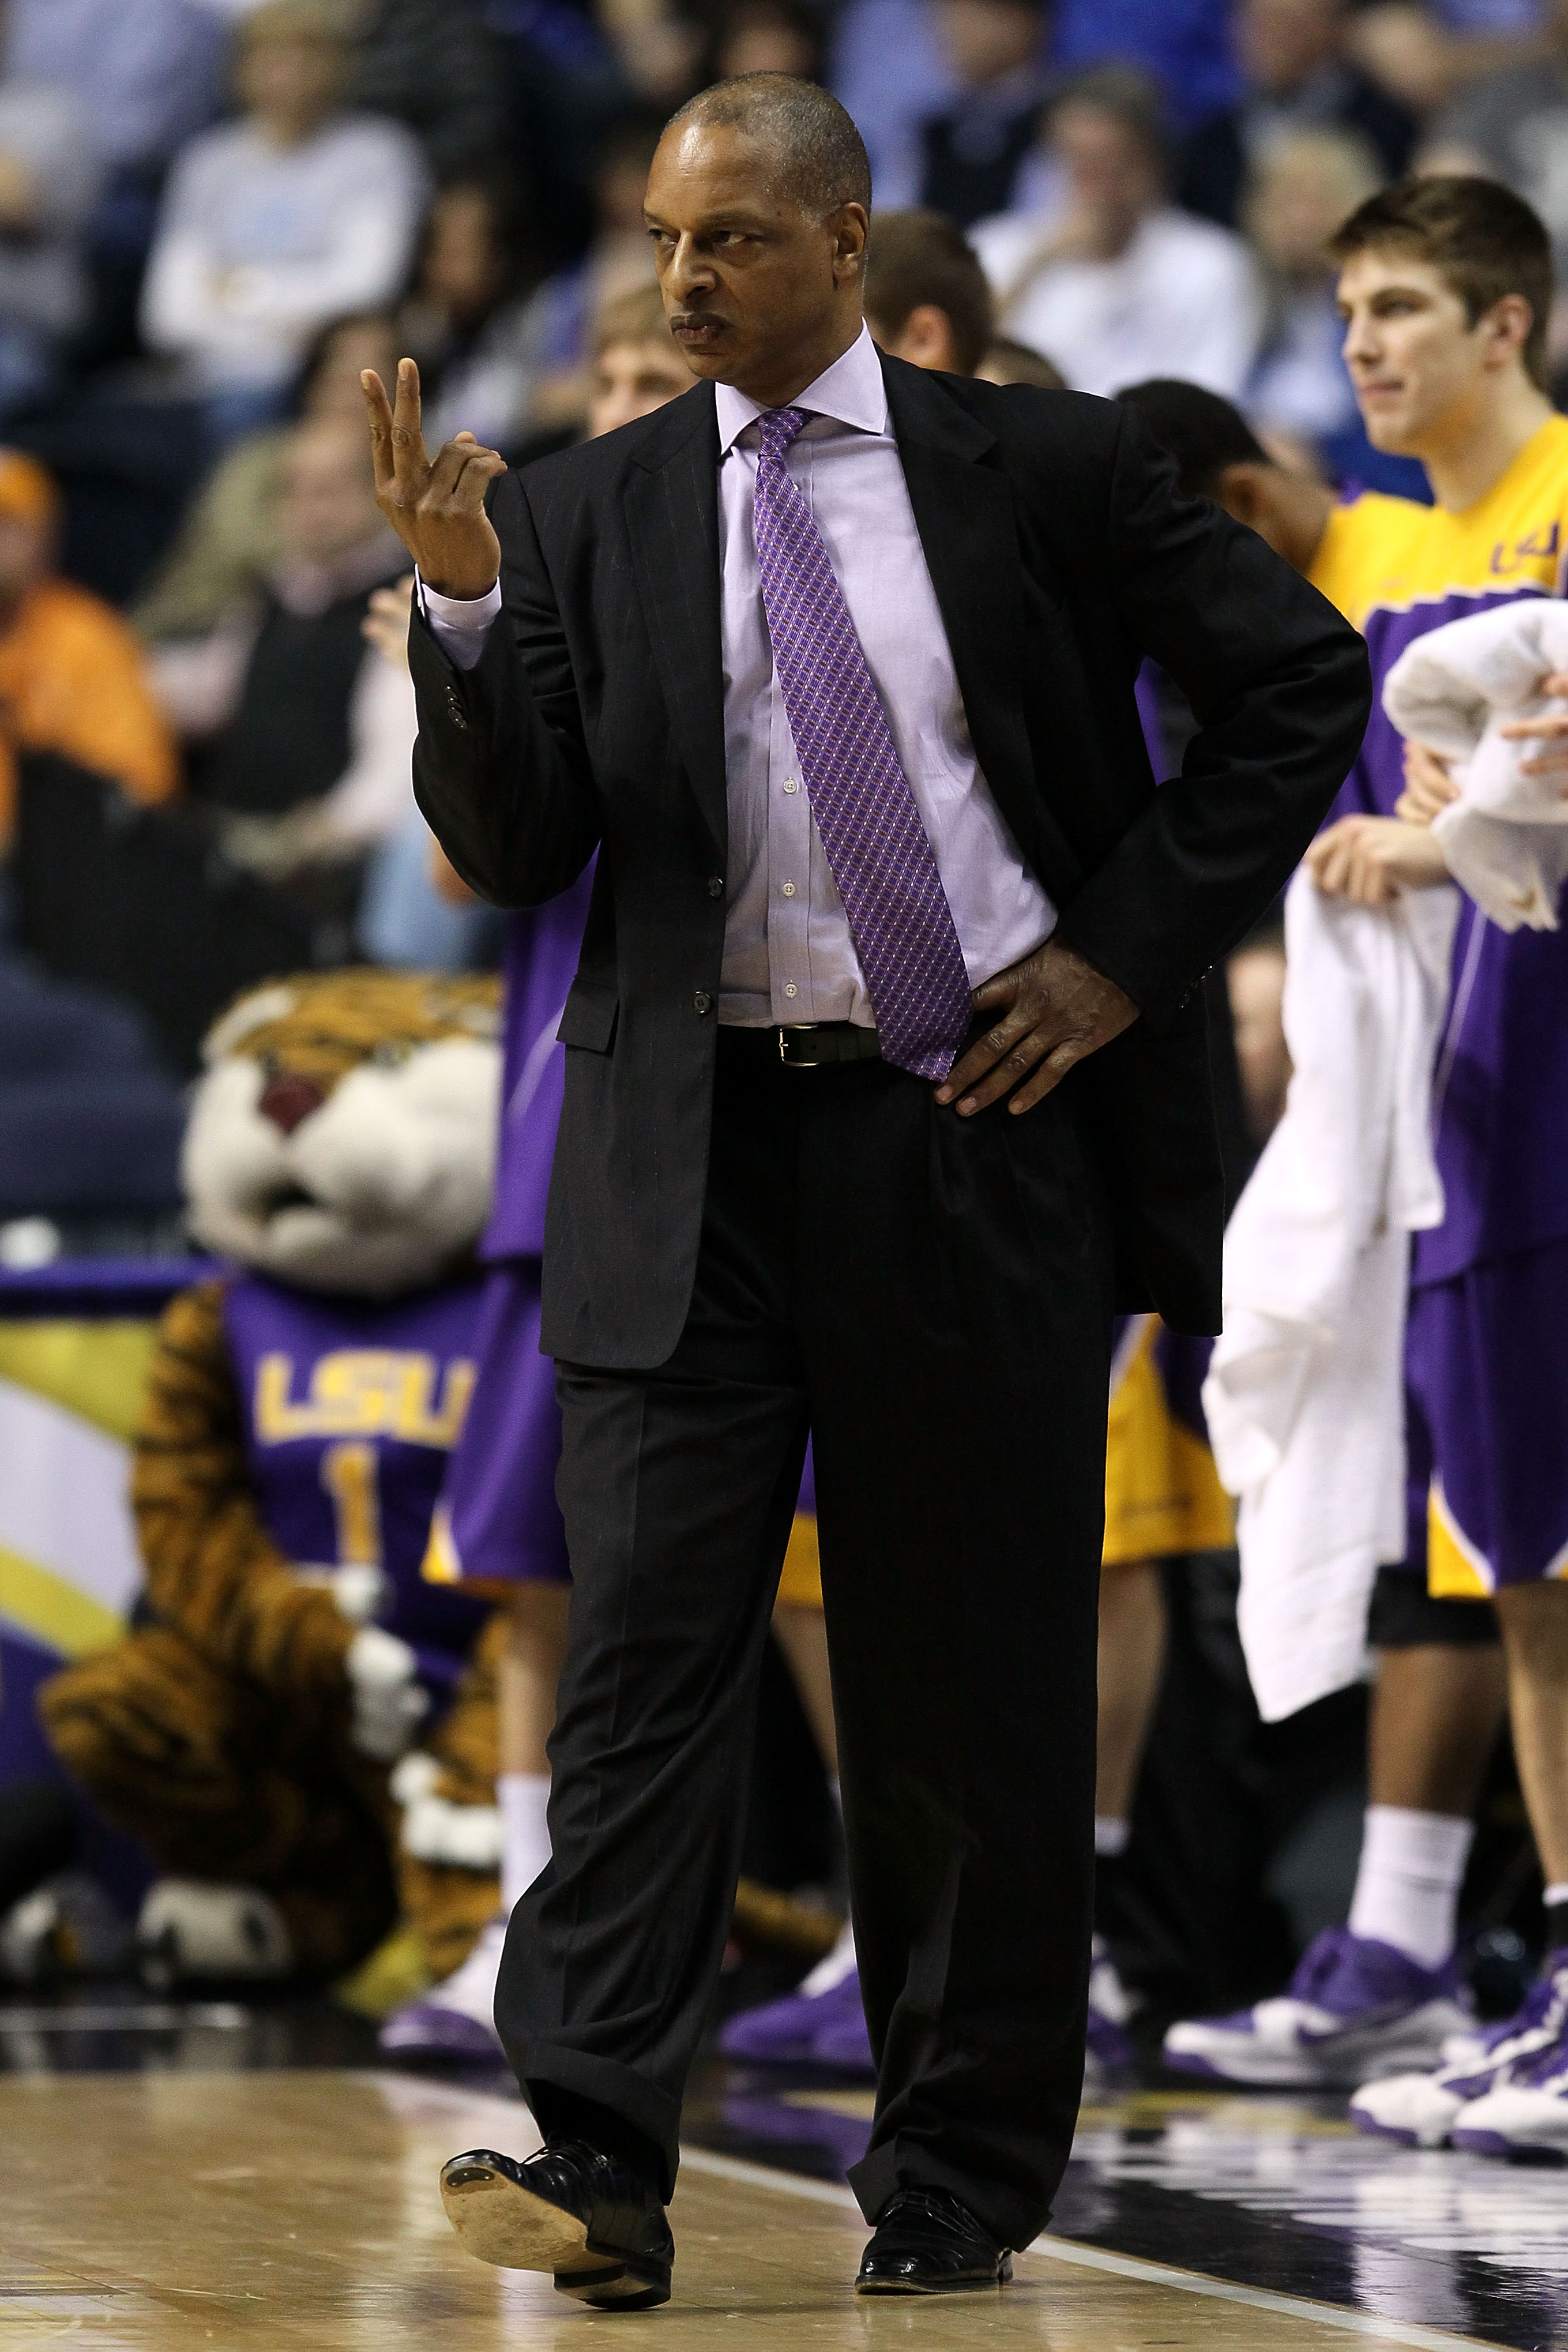 NASHVILLE, TN - MARCH 11:  Head coach Trent Johnson of the LSU Tigers coaches against the Tennessee Volunteers during the first round of the SEC Men's Basketball Tournament at the Bridgestone Arena on March 11, 2010 in Nashville, Tennessee.  (Photo by And